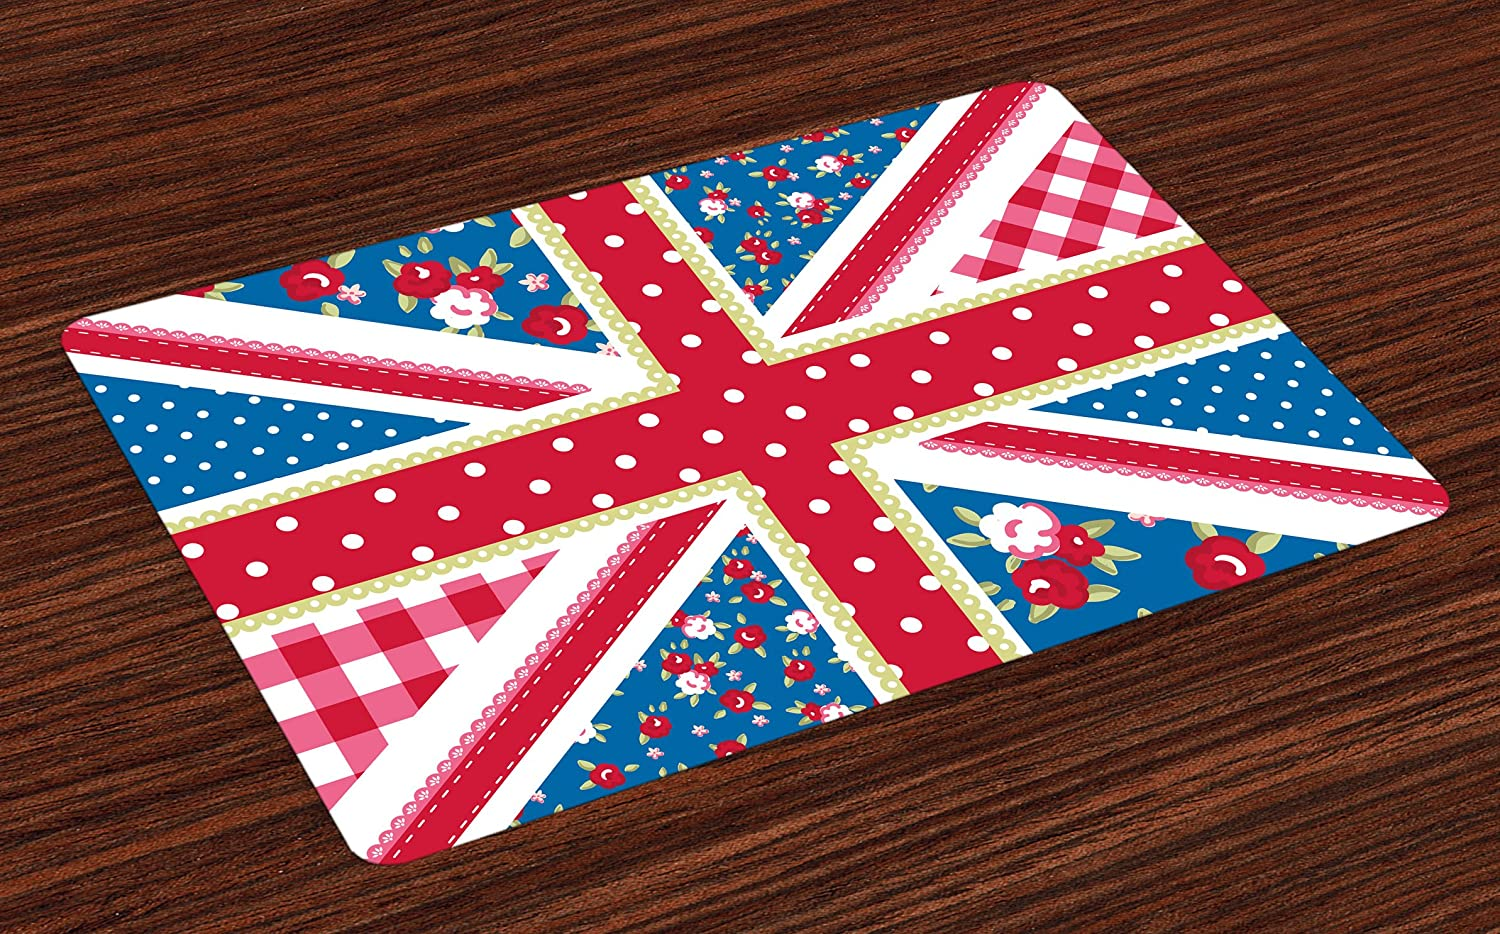 Ambesonne Shabby Flora Place Mats Set of 4, British Flag in Floral Style Retro Polka Dots Country Culture Inspired, Washable Fabric Placemats for Dining Table, Standard Size, Blue Pink